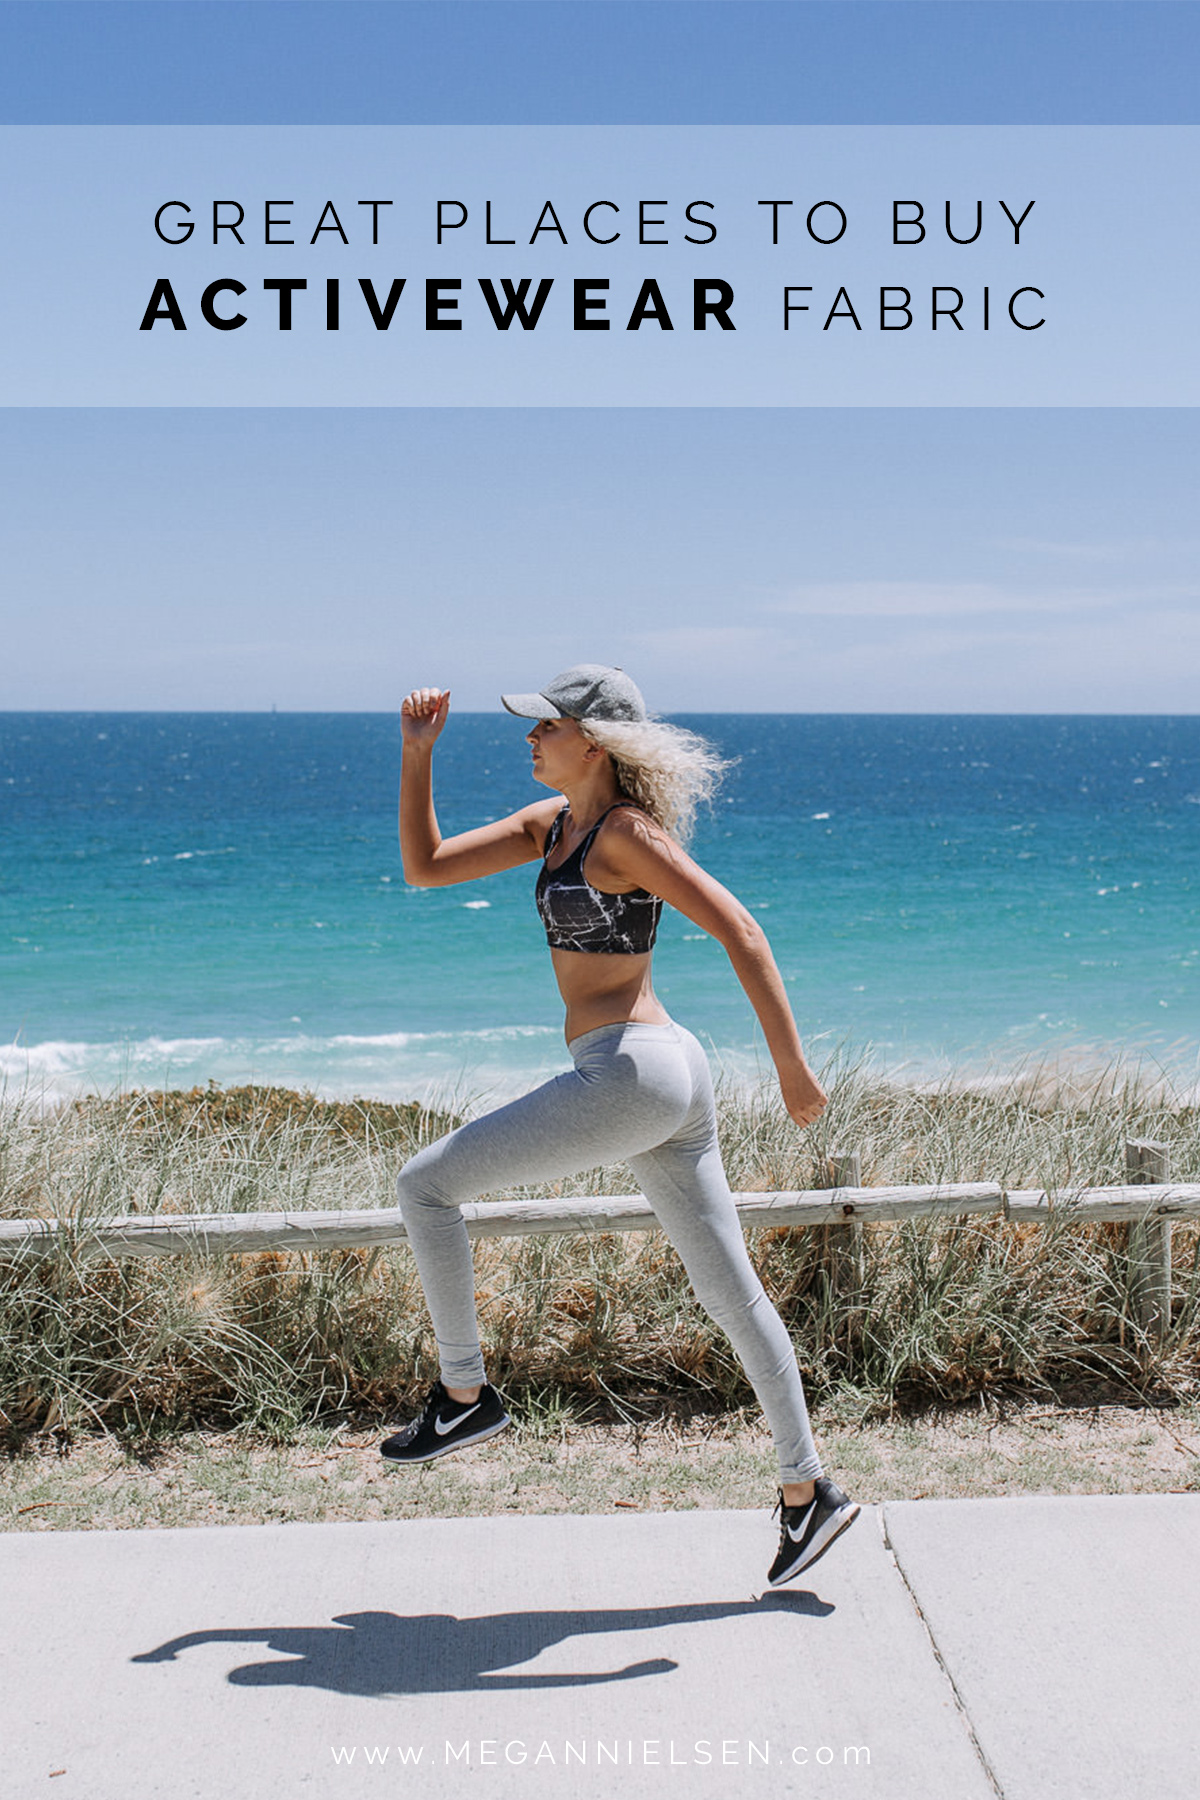 Great places to buy activewear fabric